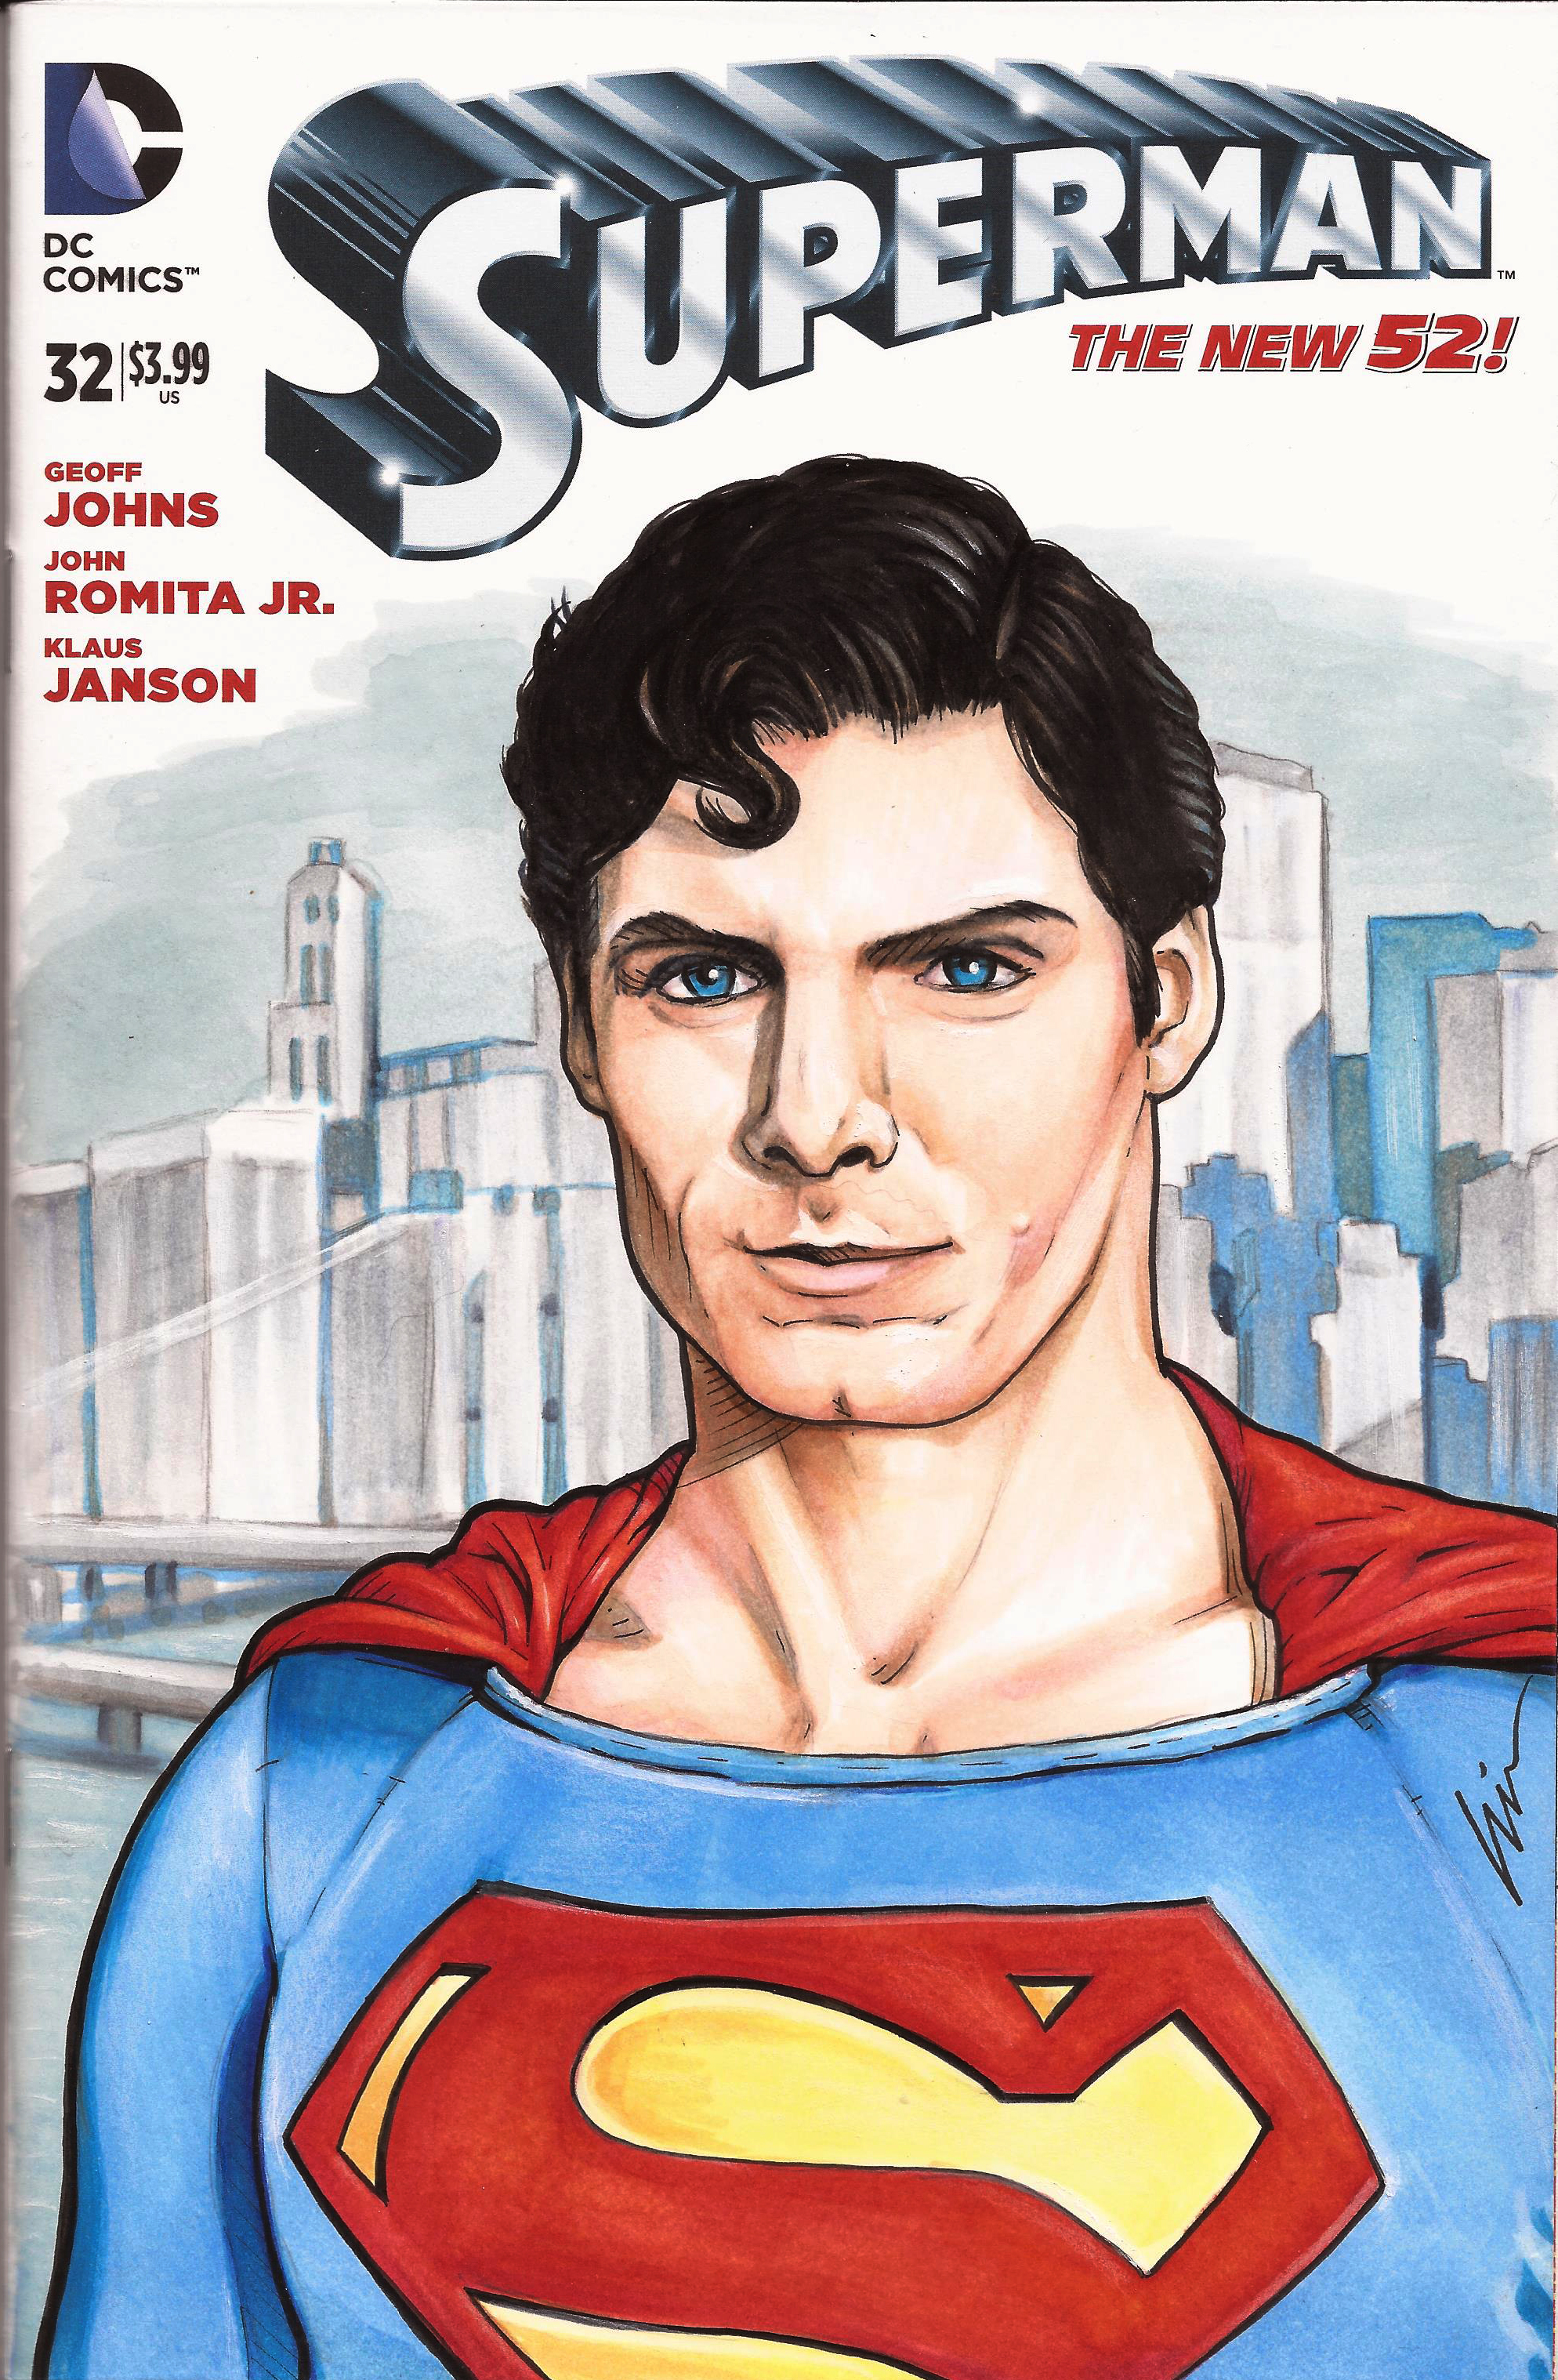 Just Super- my Christopher Reeve Superman Sketchcover